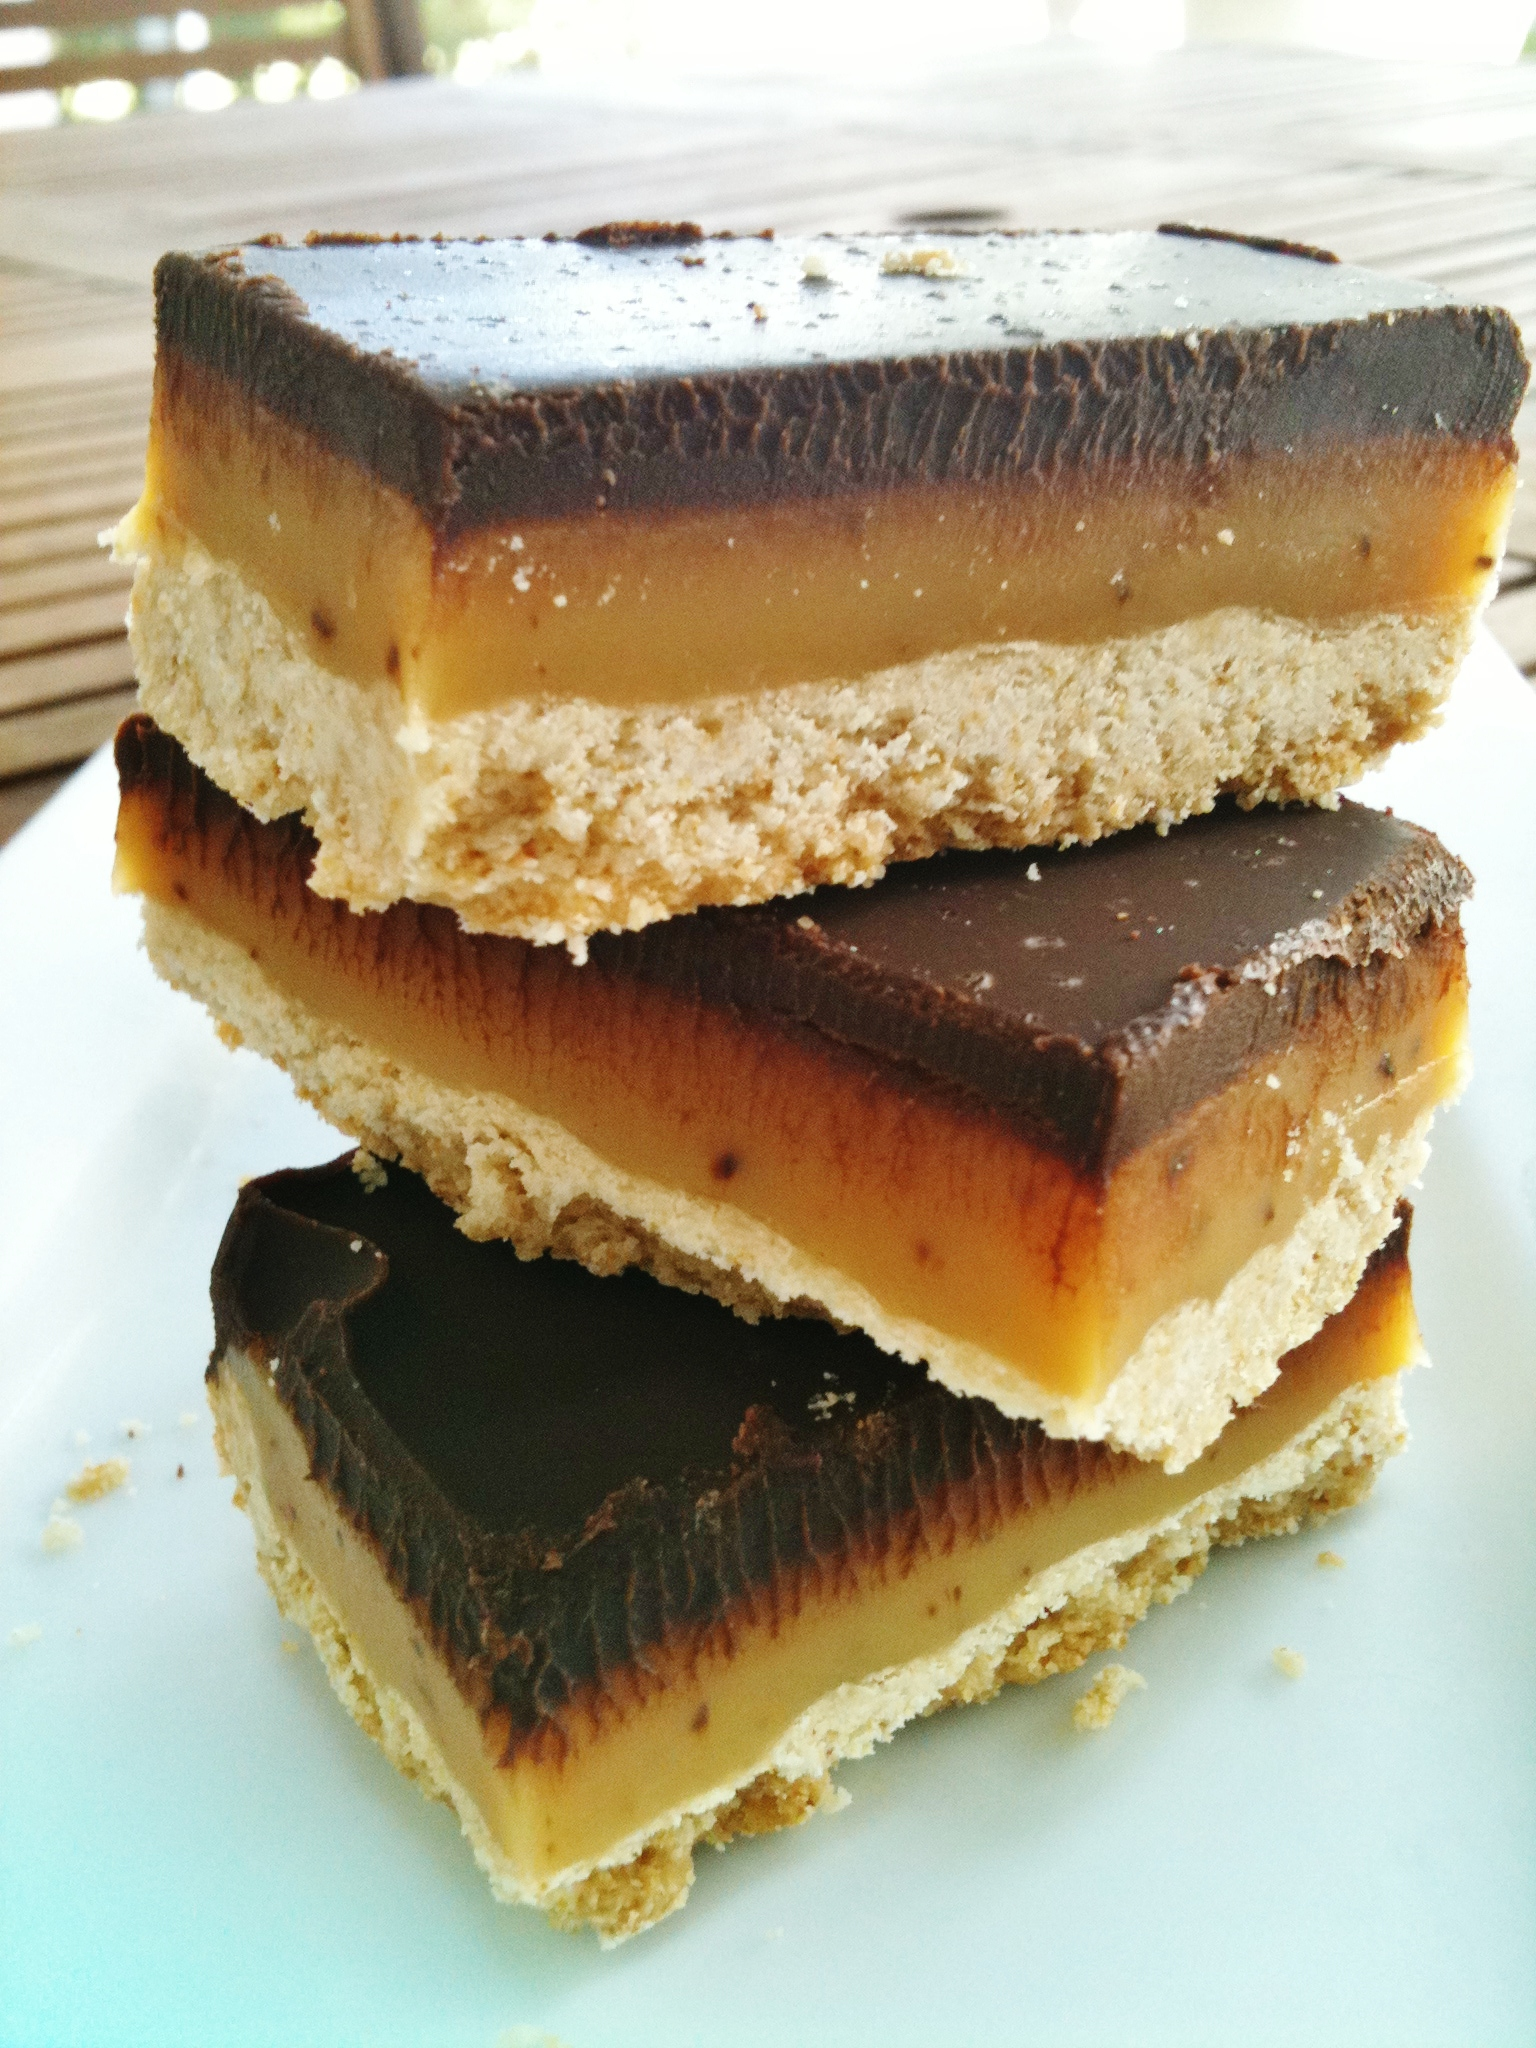 Salted Caramel Chocolate Shortbread Bars | LOVES TO EAT